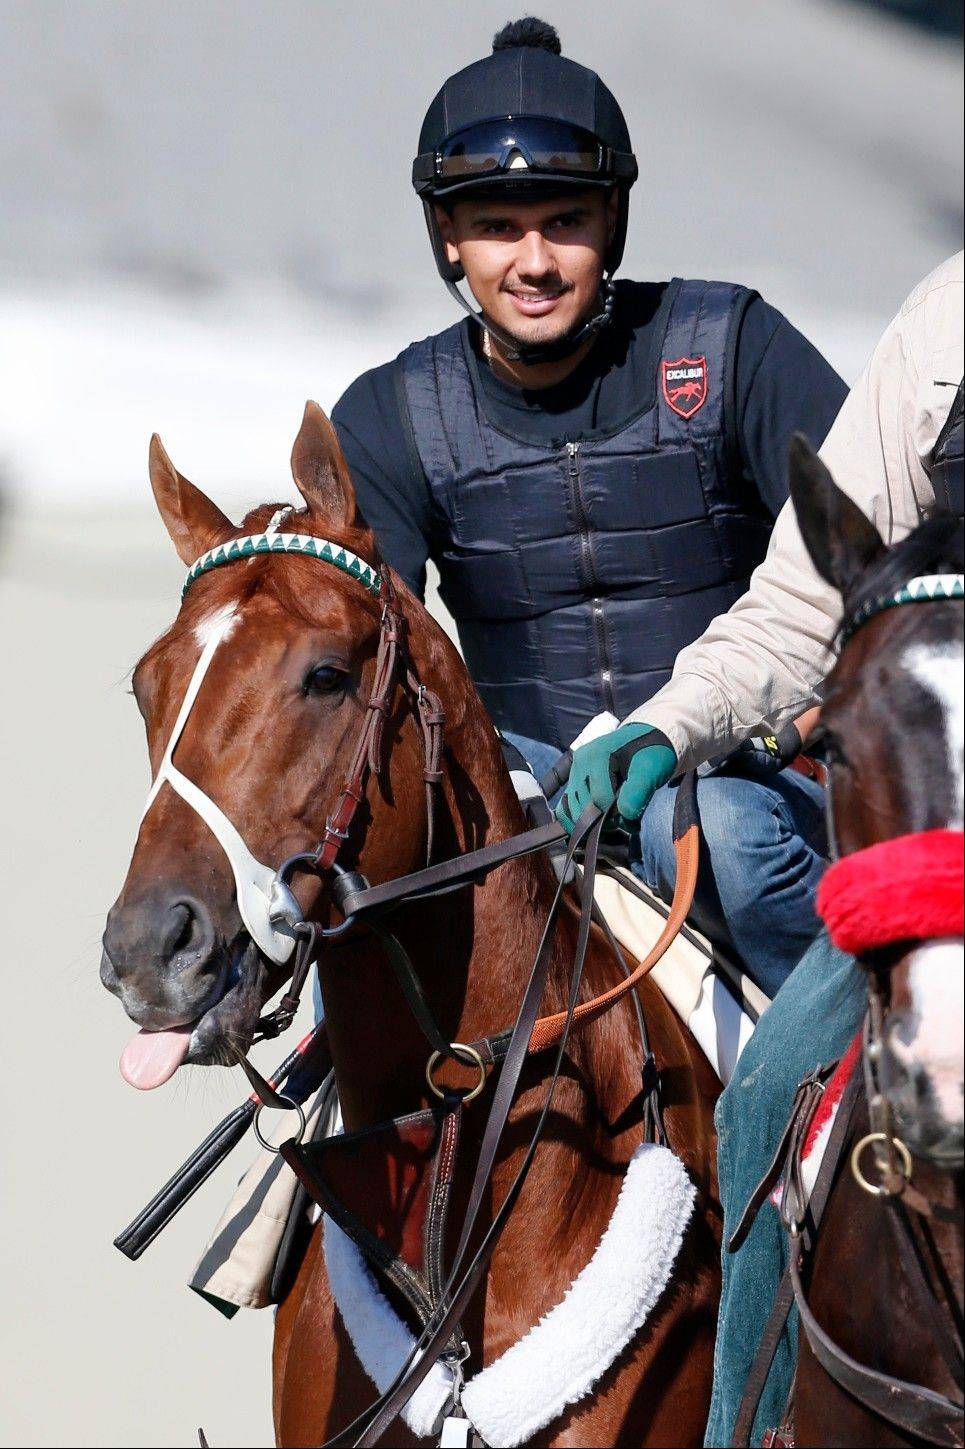 I'll Have Another, here with exercise rider Jonny Garcia up, has a lot of naysayers thinking he won't be able to handle monster oval at Belmont on Saturday. Mike Spellman says don't believe them.